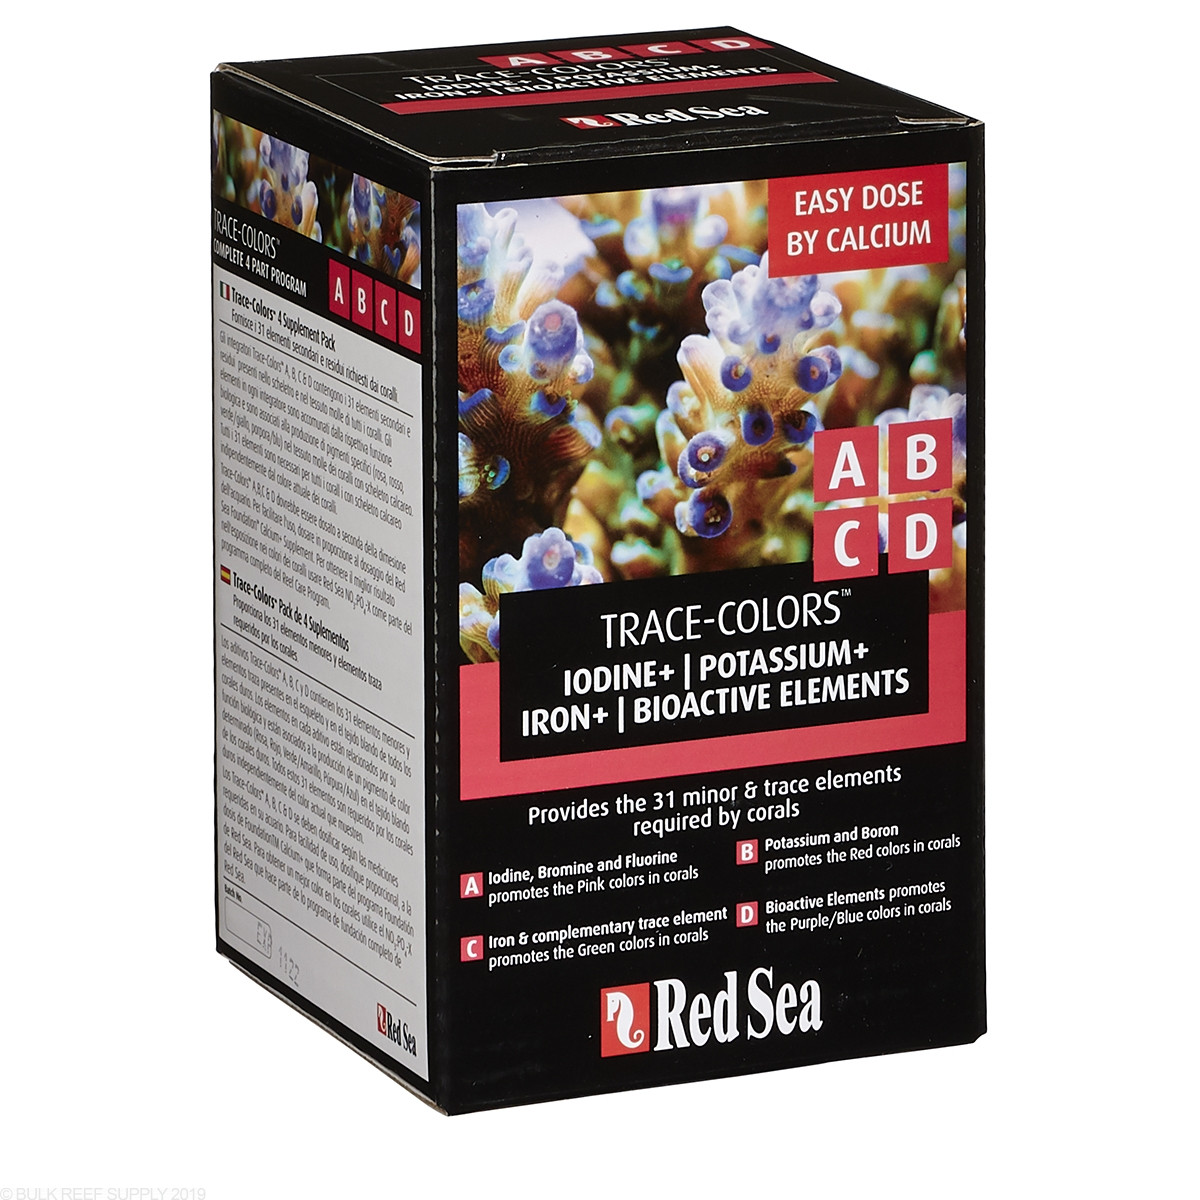 Red Sea Trace Colors Abcd 4 Pack Bulk Reef Supply